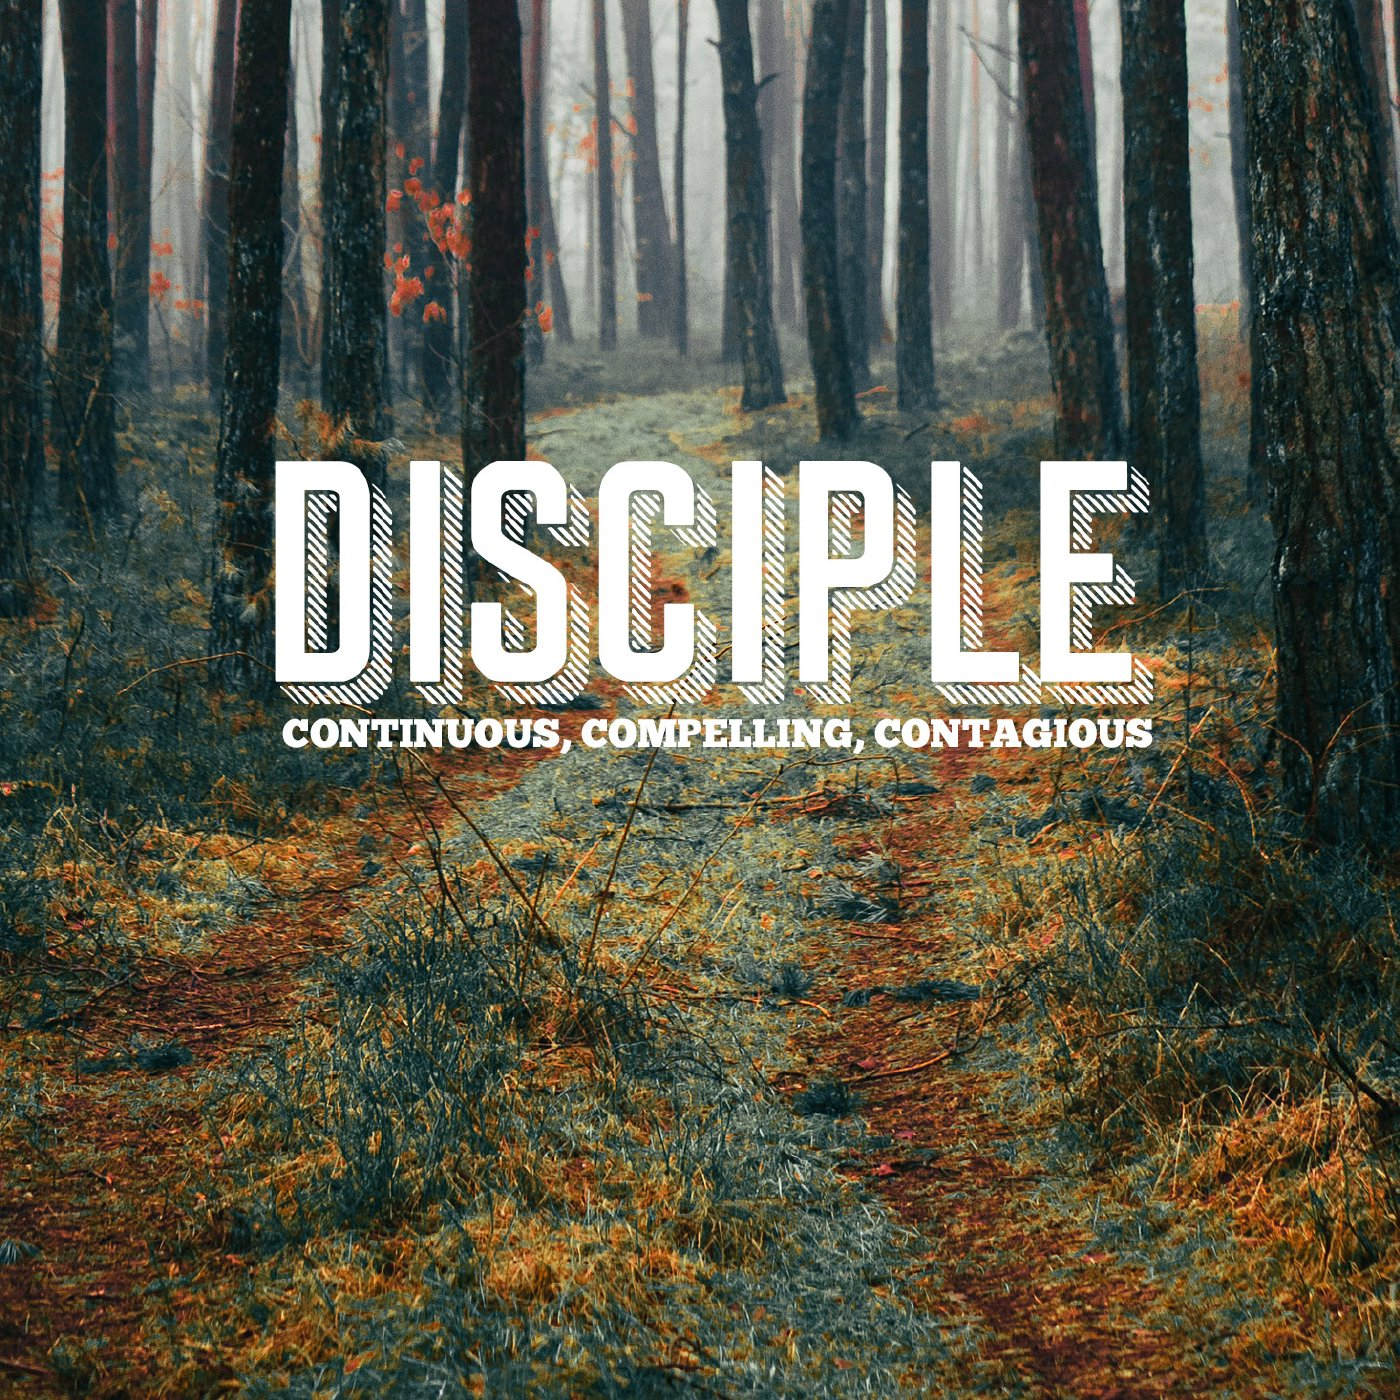 The Place to Begin - Becoming a Disciple